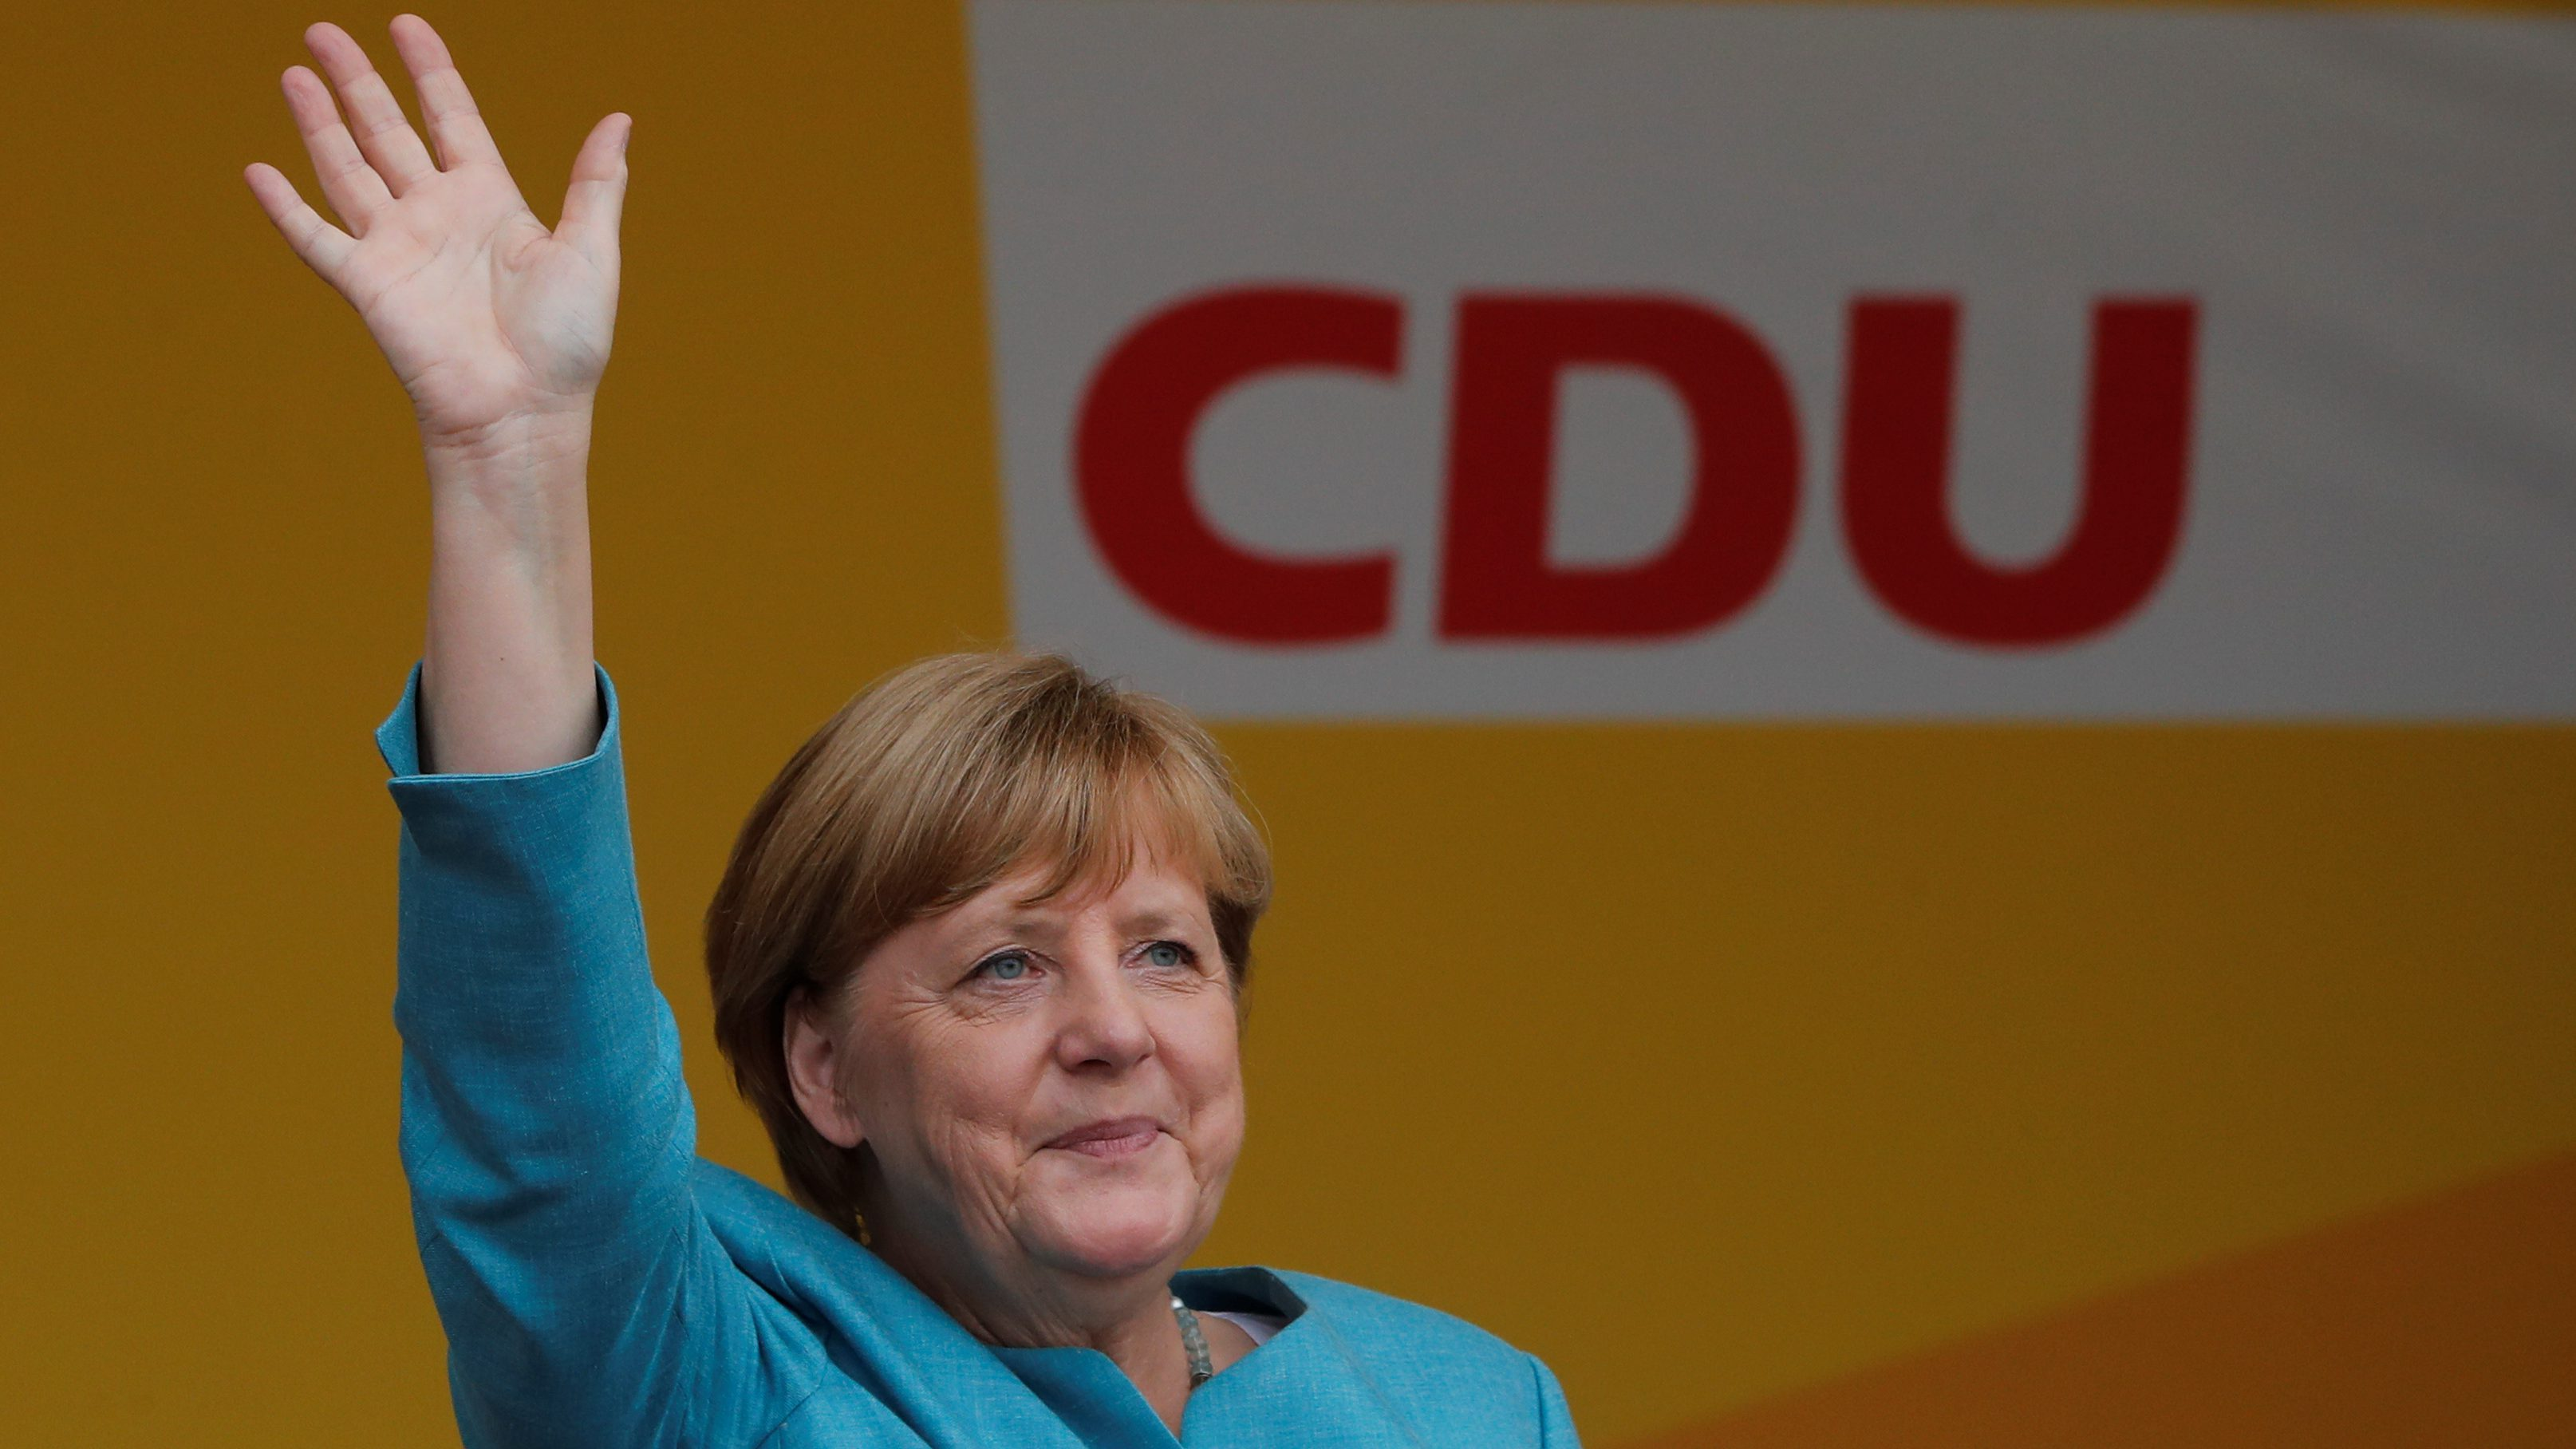 German election: How Angela Merkel took in one million refugees and